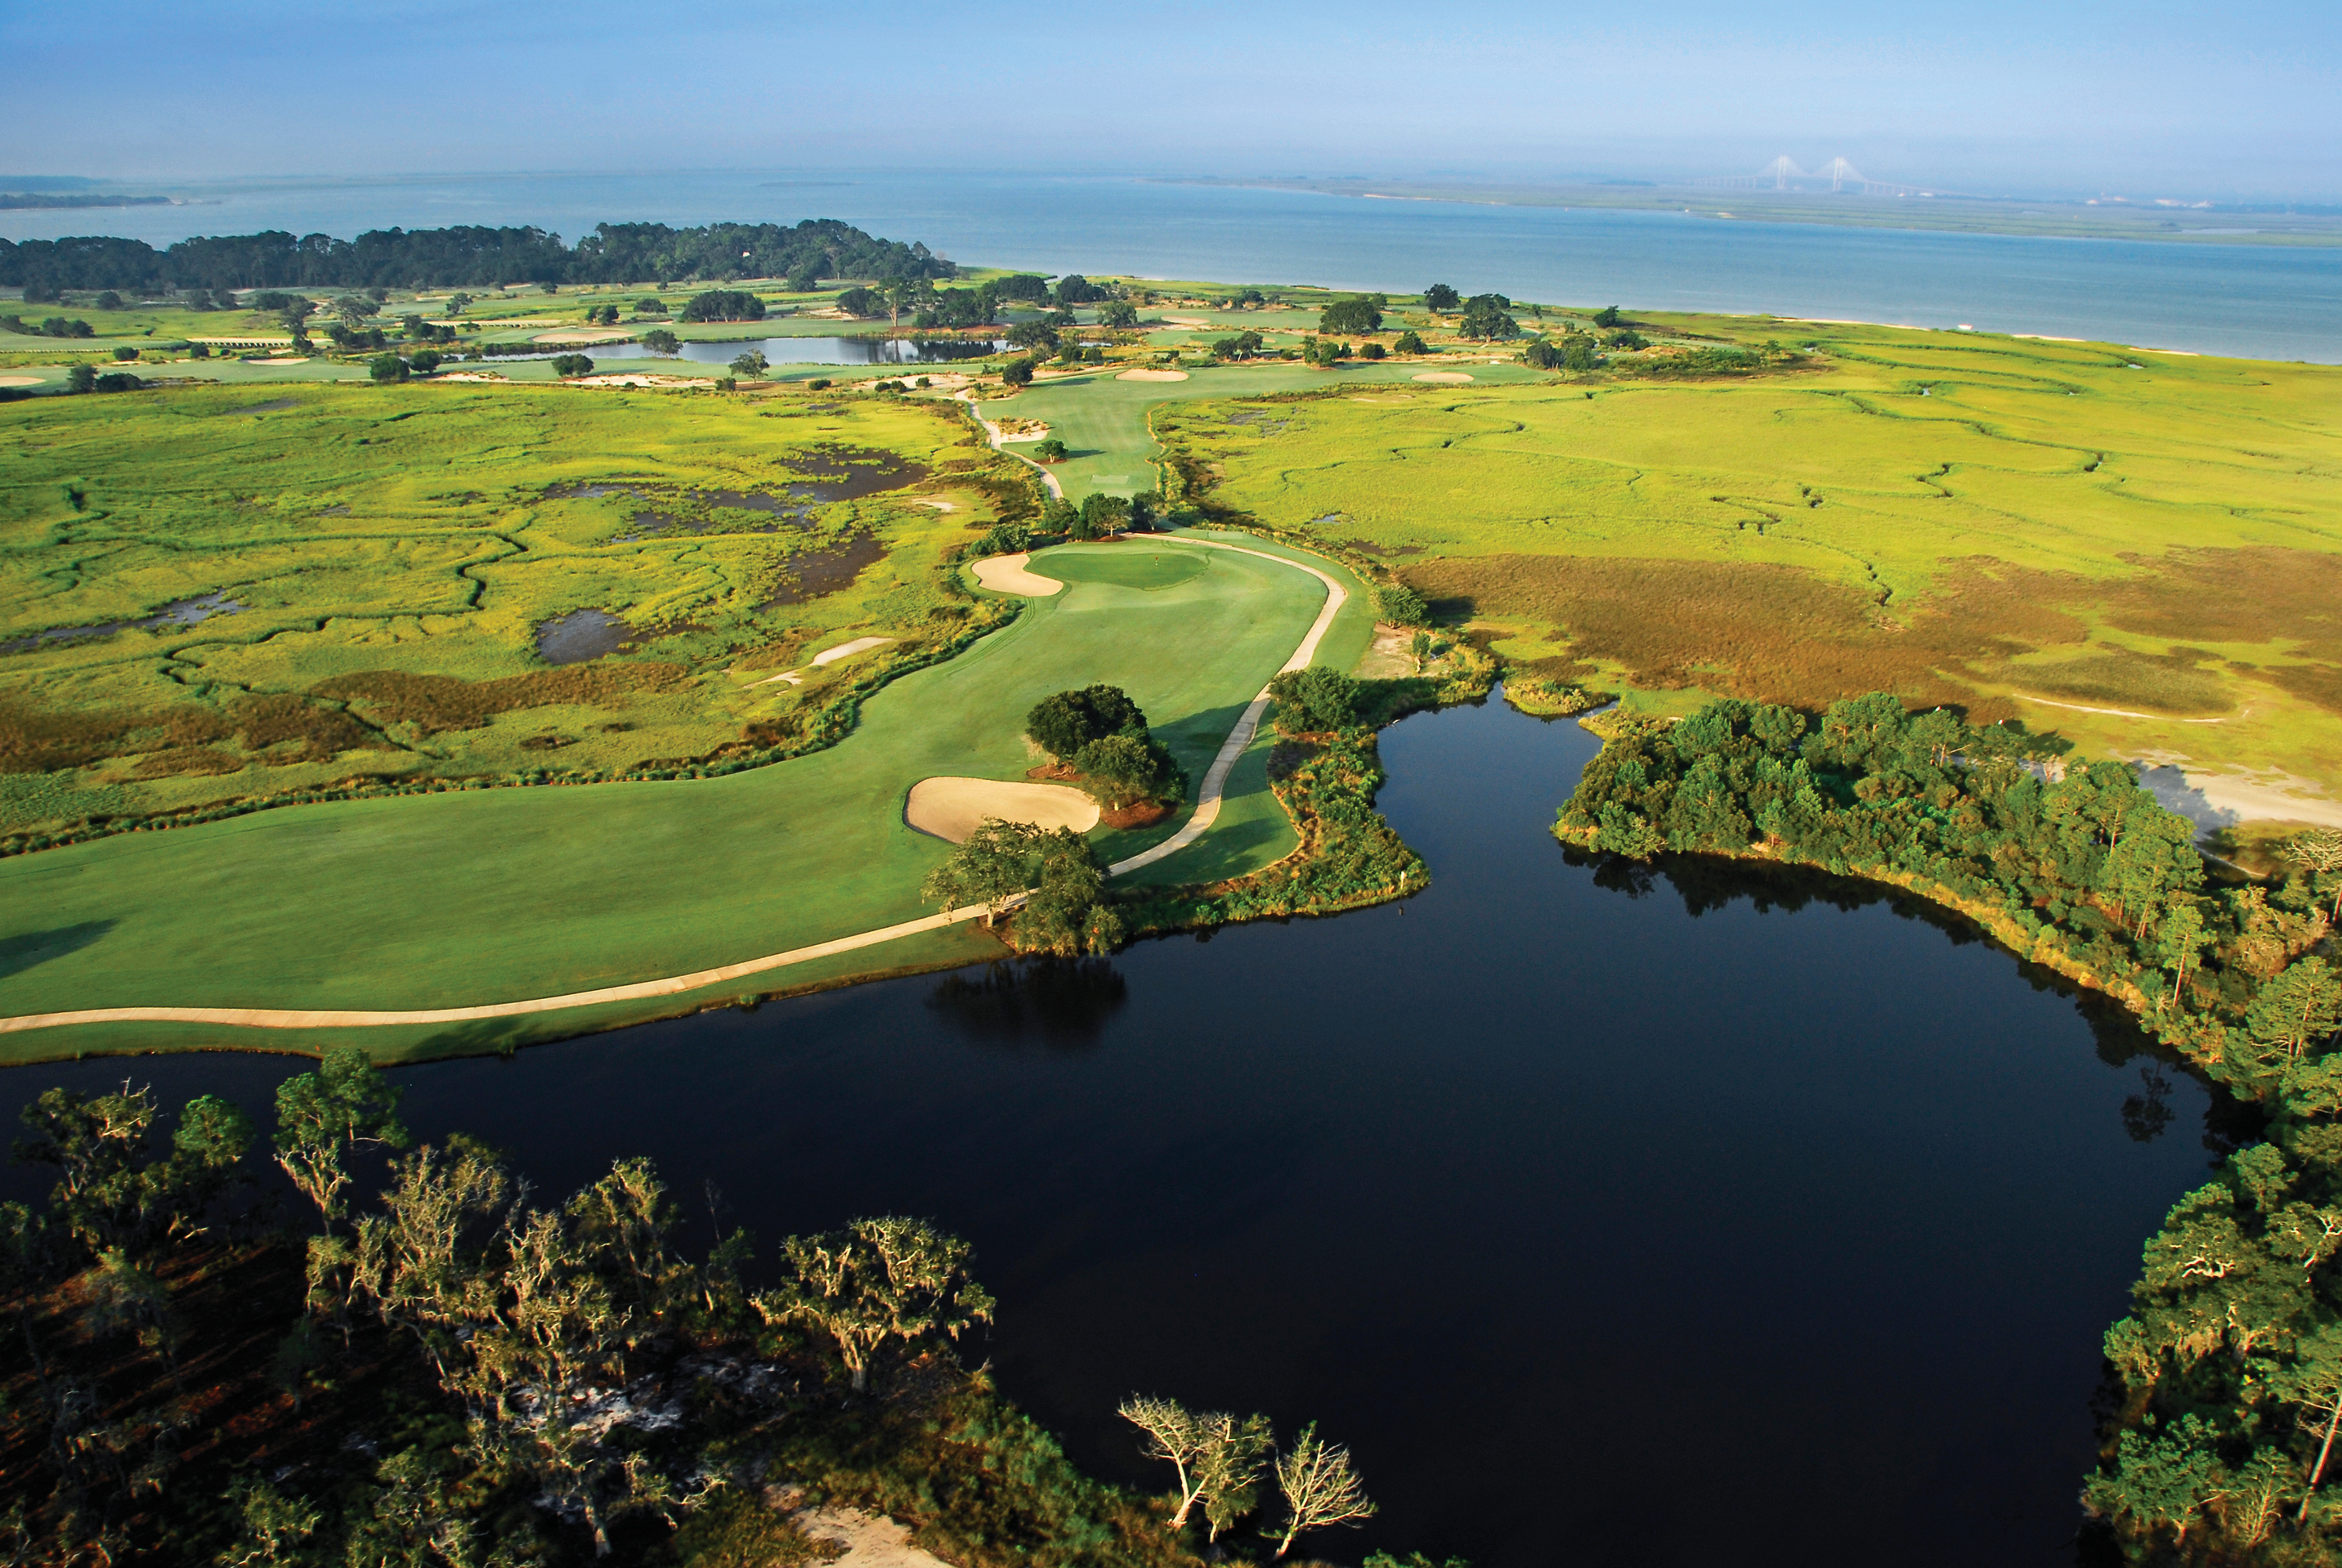 The Seaside Course at Sea Island Golf Club, the second-ranked public access course in Georgia.